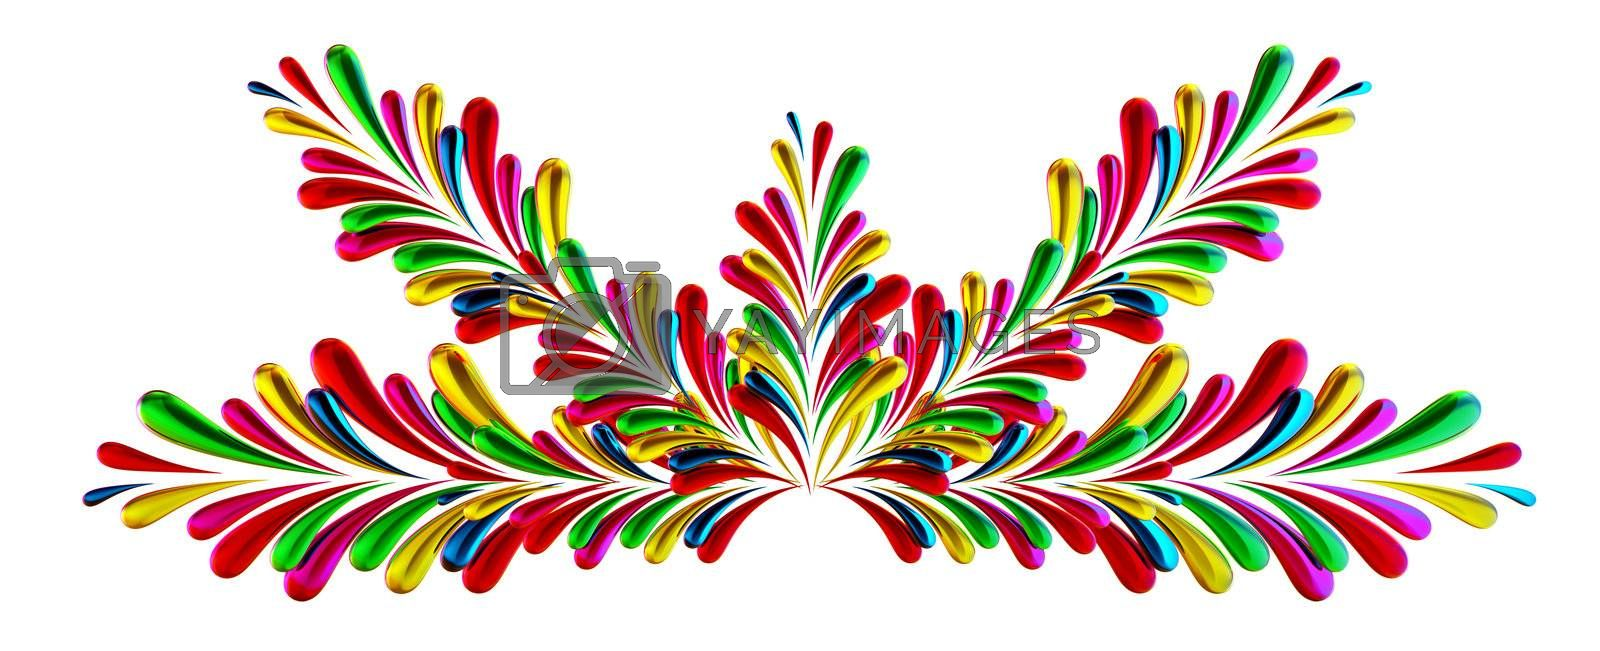 colorful abstract concept frame with many design elements on white background